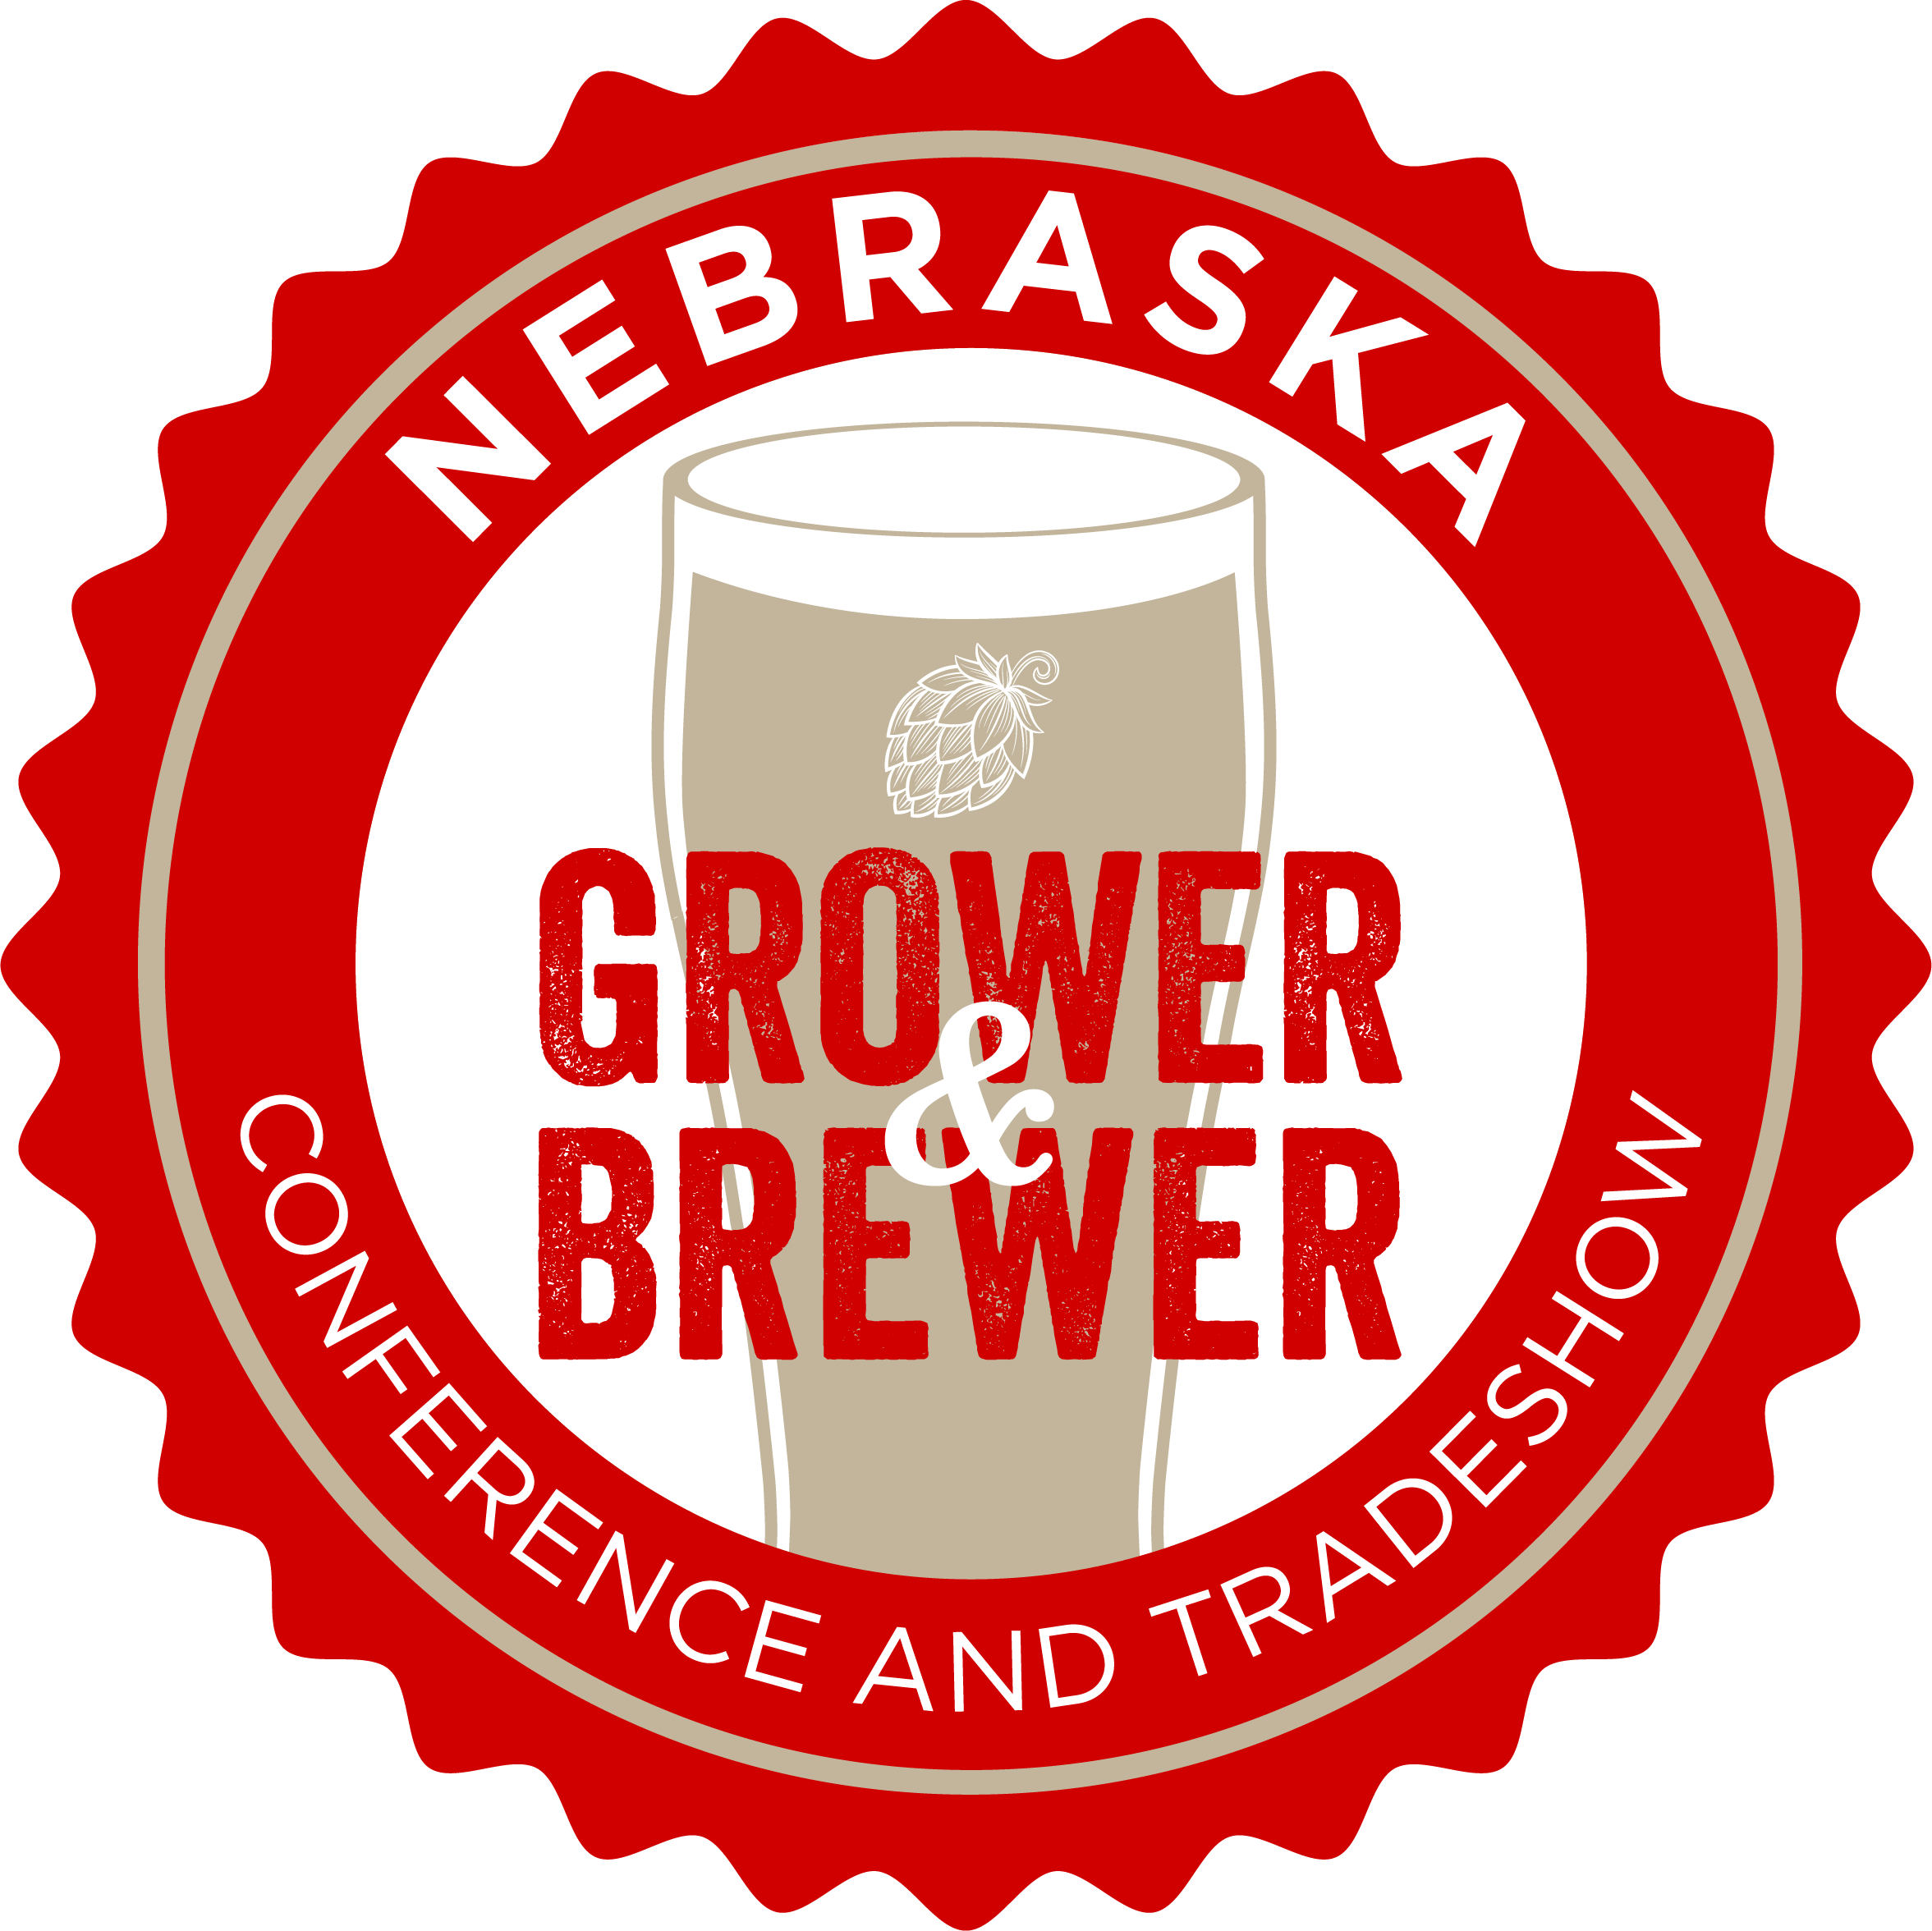 The Nebraska Grower and Brewer Conference & Trade Show will be held January 13-14, 2019.